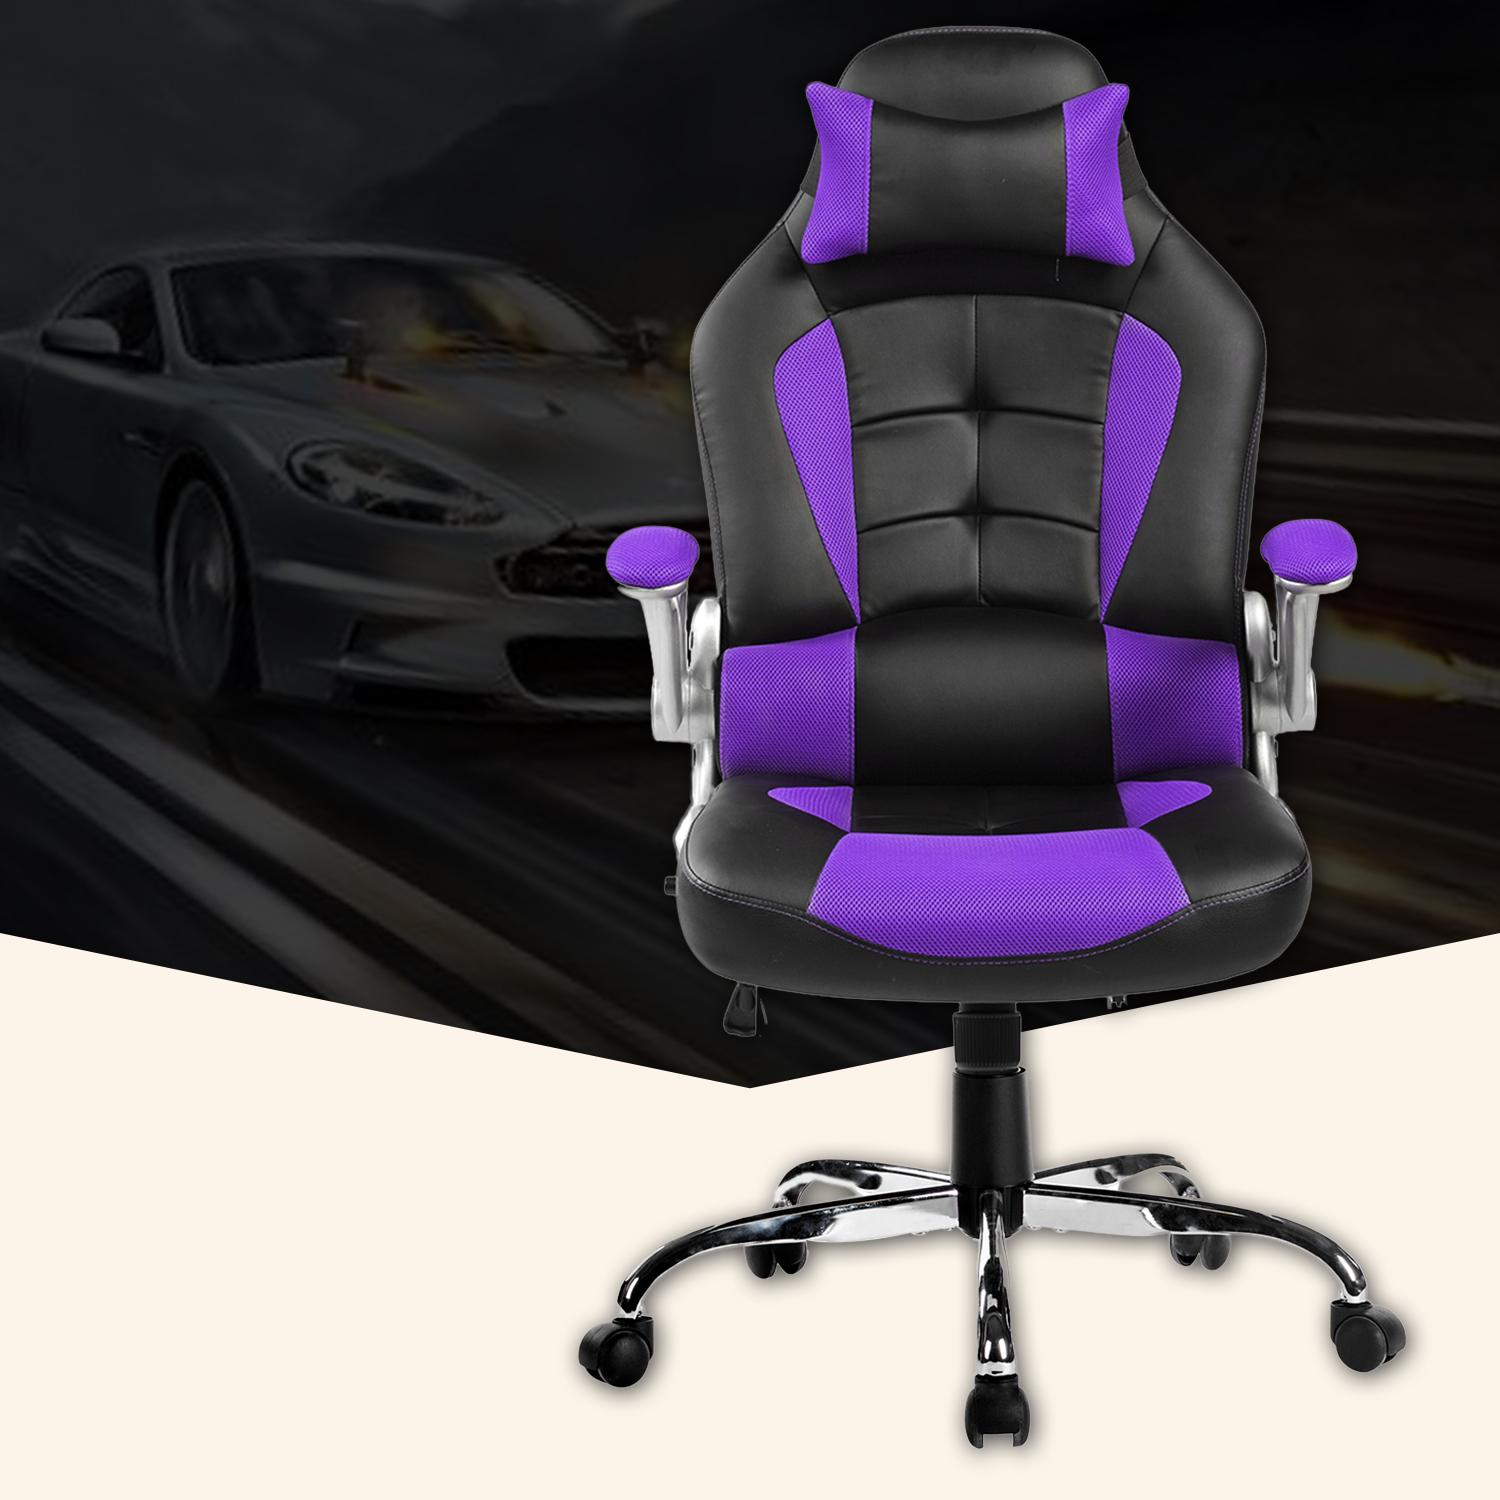 Amazoncom Merax High back Ergonomic Pu Swivel Chair  : aeb00eb1 bc05 426e b065 f704a3d563ee Back Supports <strong>for Men</strong> from www.amazon.com size 1500 x 1500 jpeg 139kB